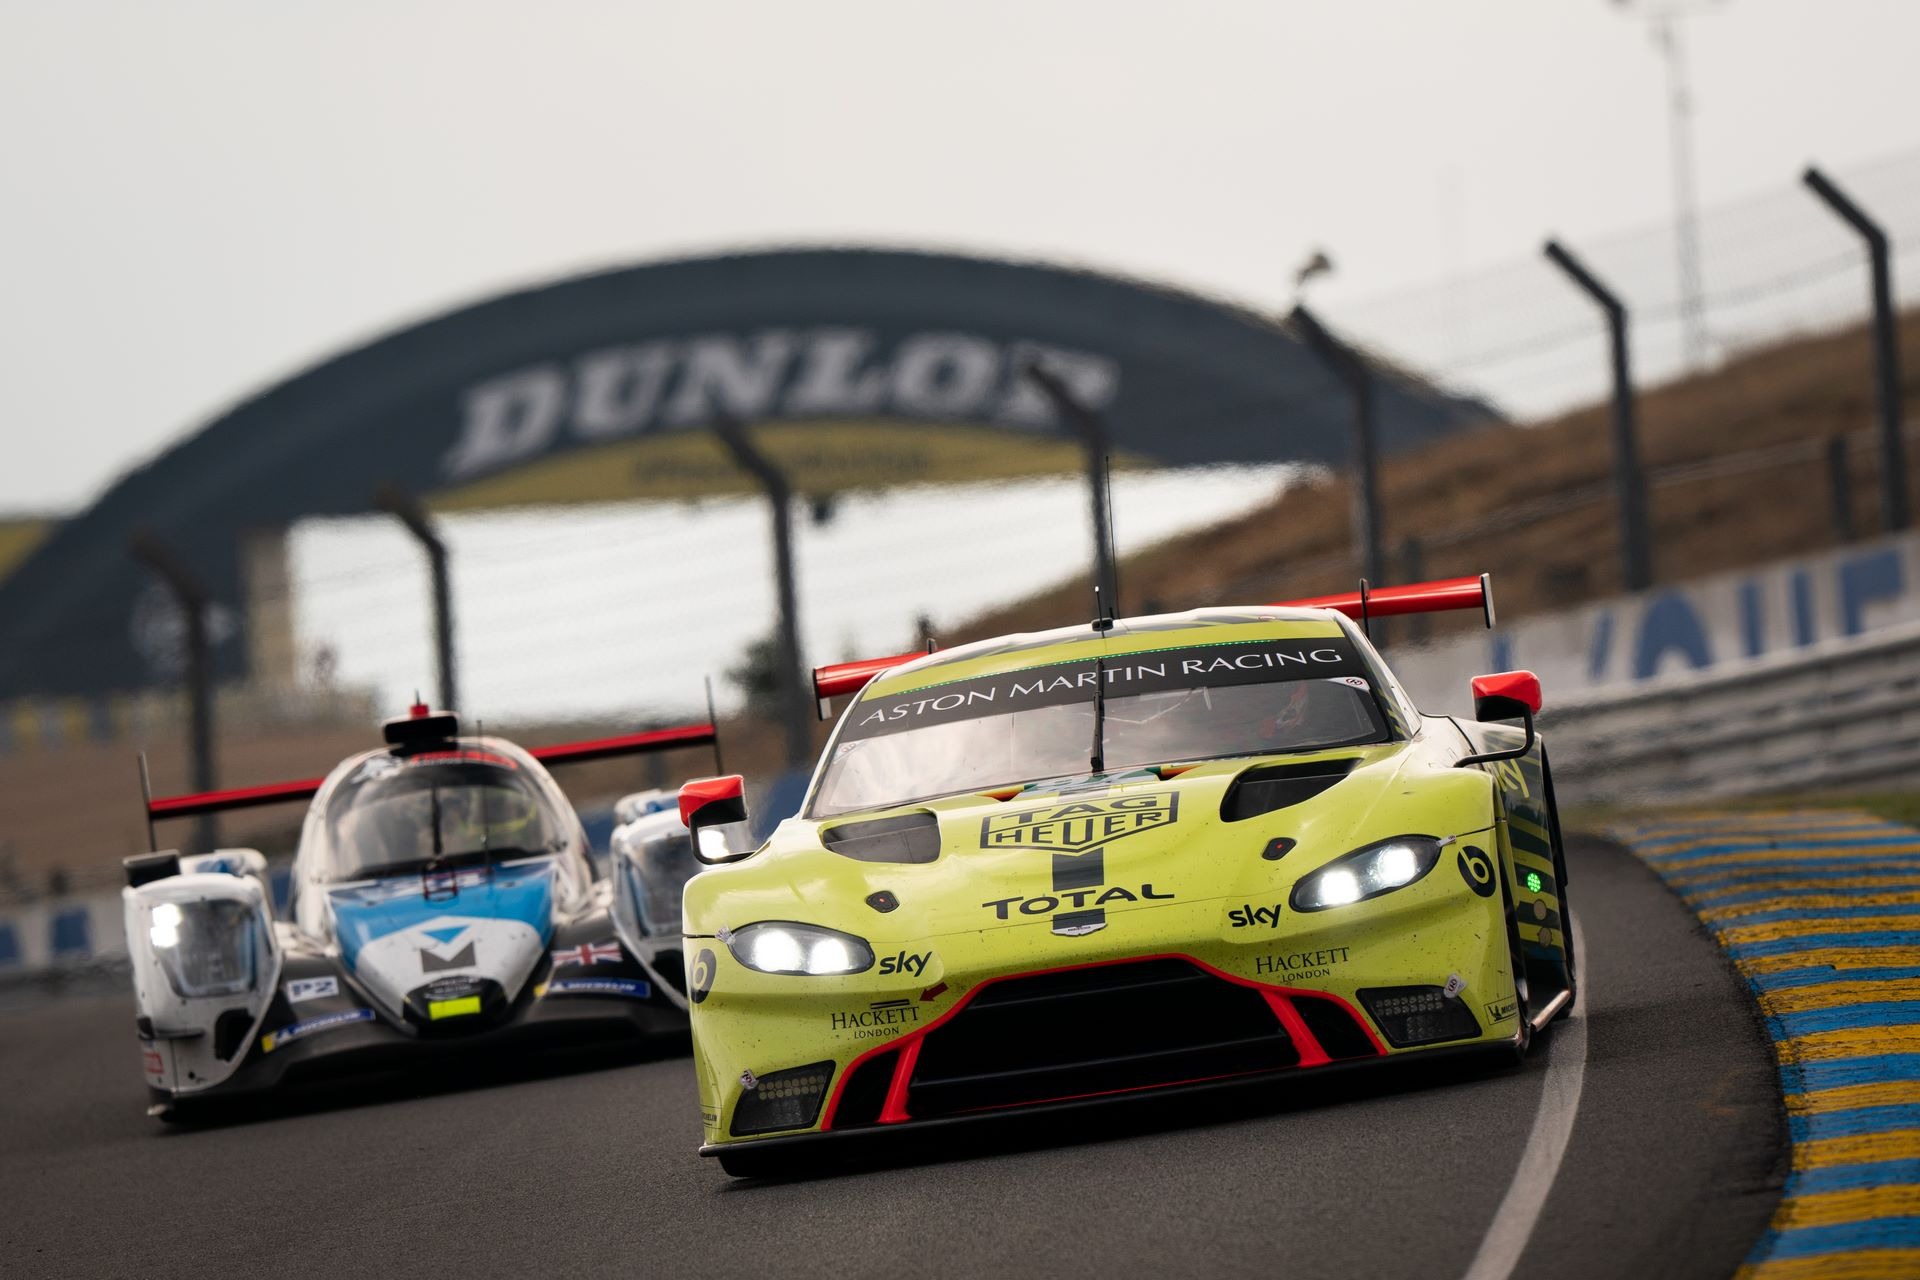 2019 / 2020 FIA World Endurance Championship Le Mans, France 17th - 20th September 2020 Photo: Nick Dungan / Drew Gibson Photography